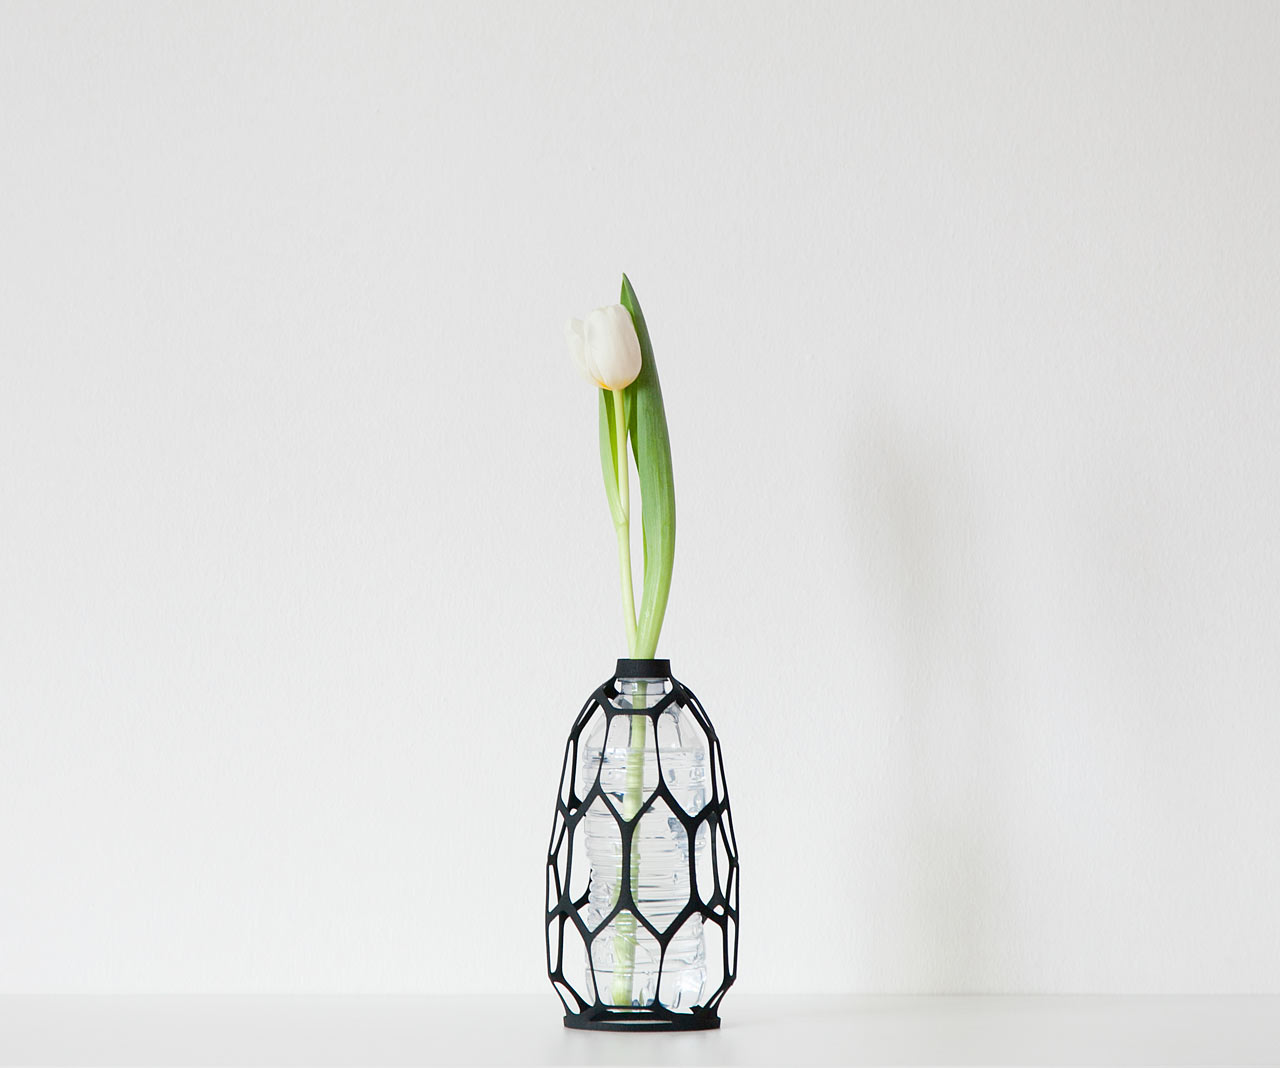 3d printed vase exteriors give new life to used plastic bottles libero rutilo 3d printed vases pet bottles reviewsmspy